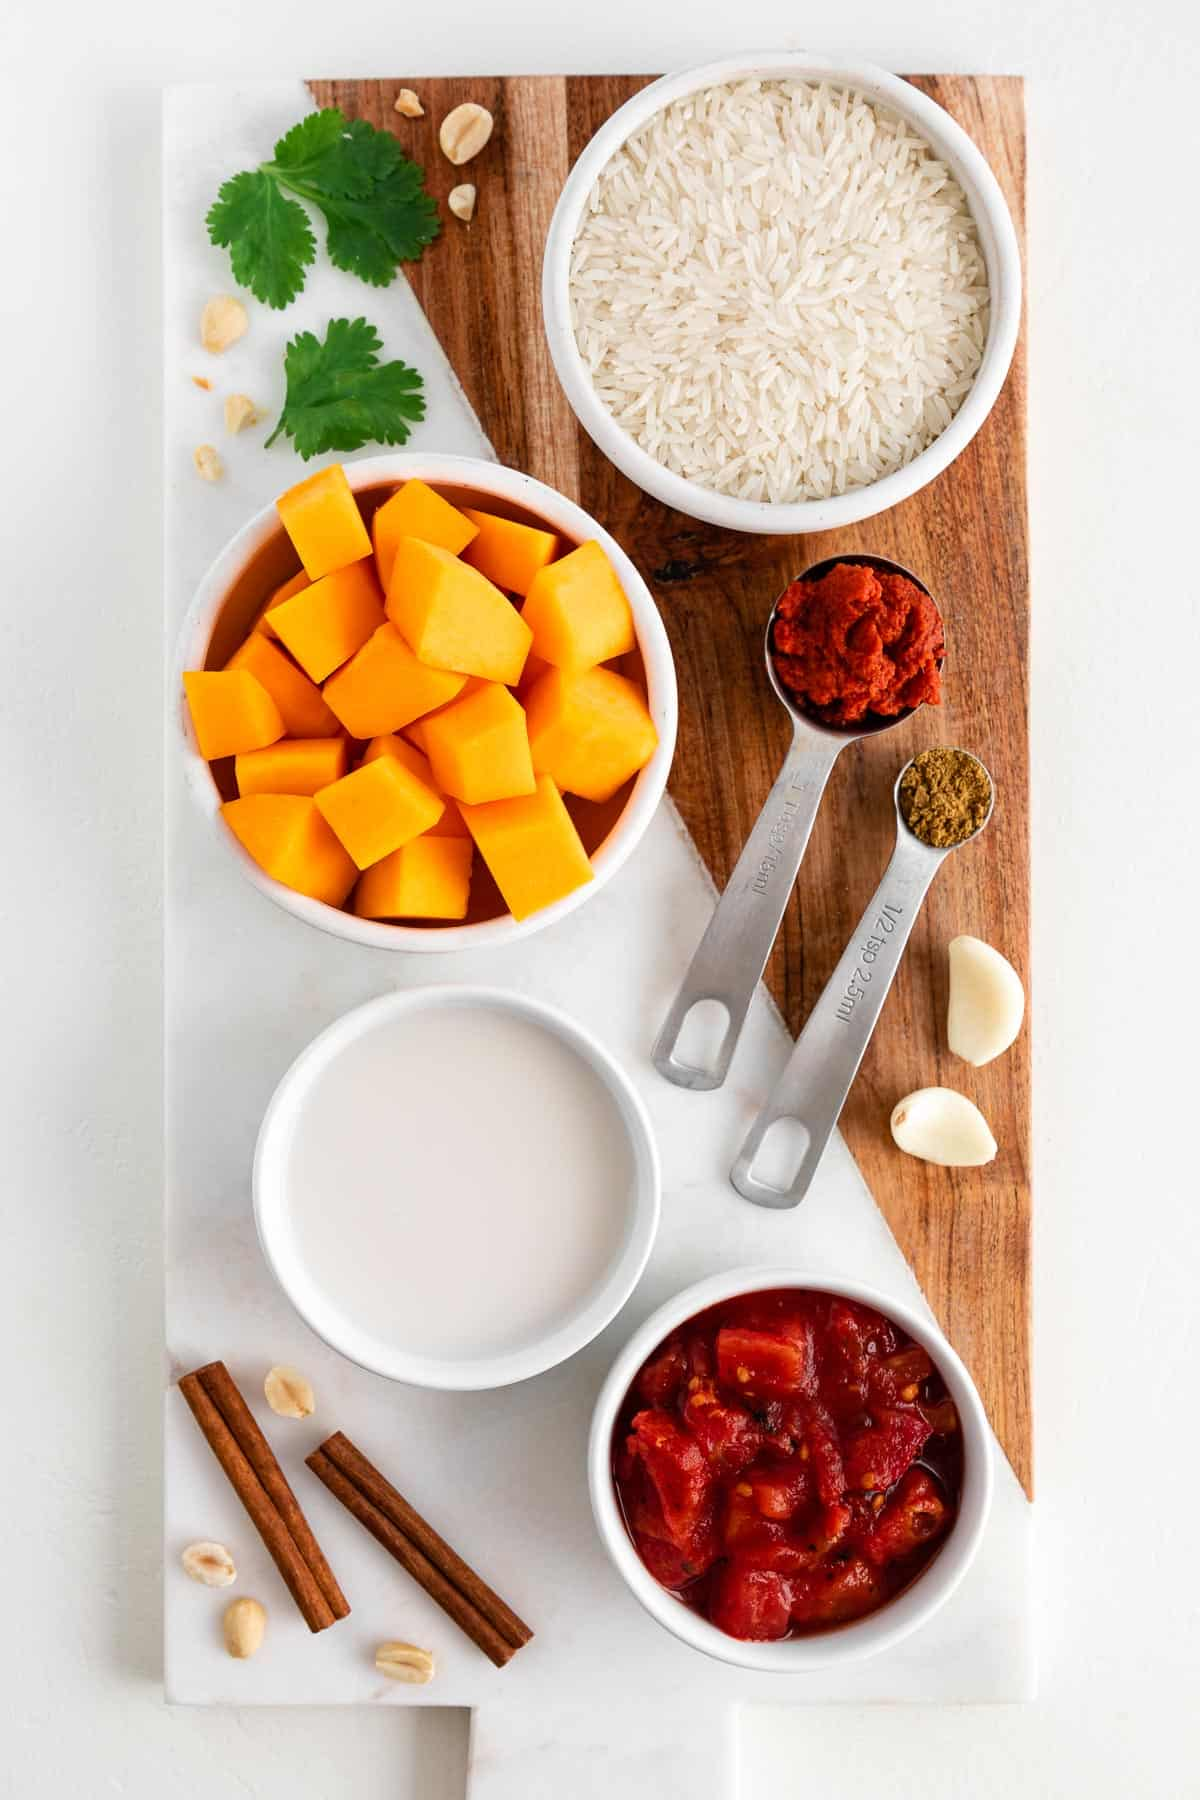 a marble and wood cutting board topped with bowls of coconut milk, diced tomatoes, squash, white rice, cinnamon sticks, red curry paste, cumin, and cilantro